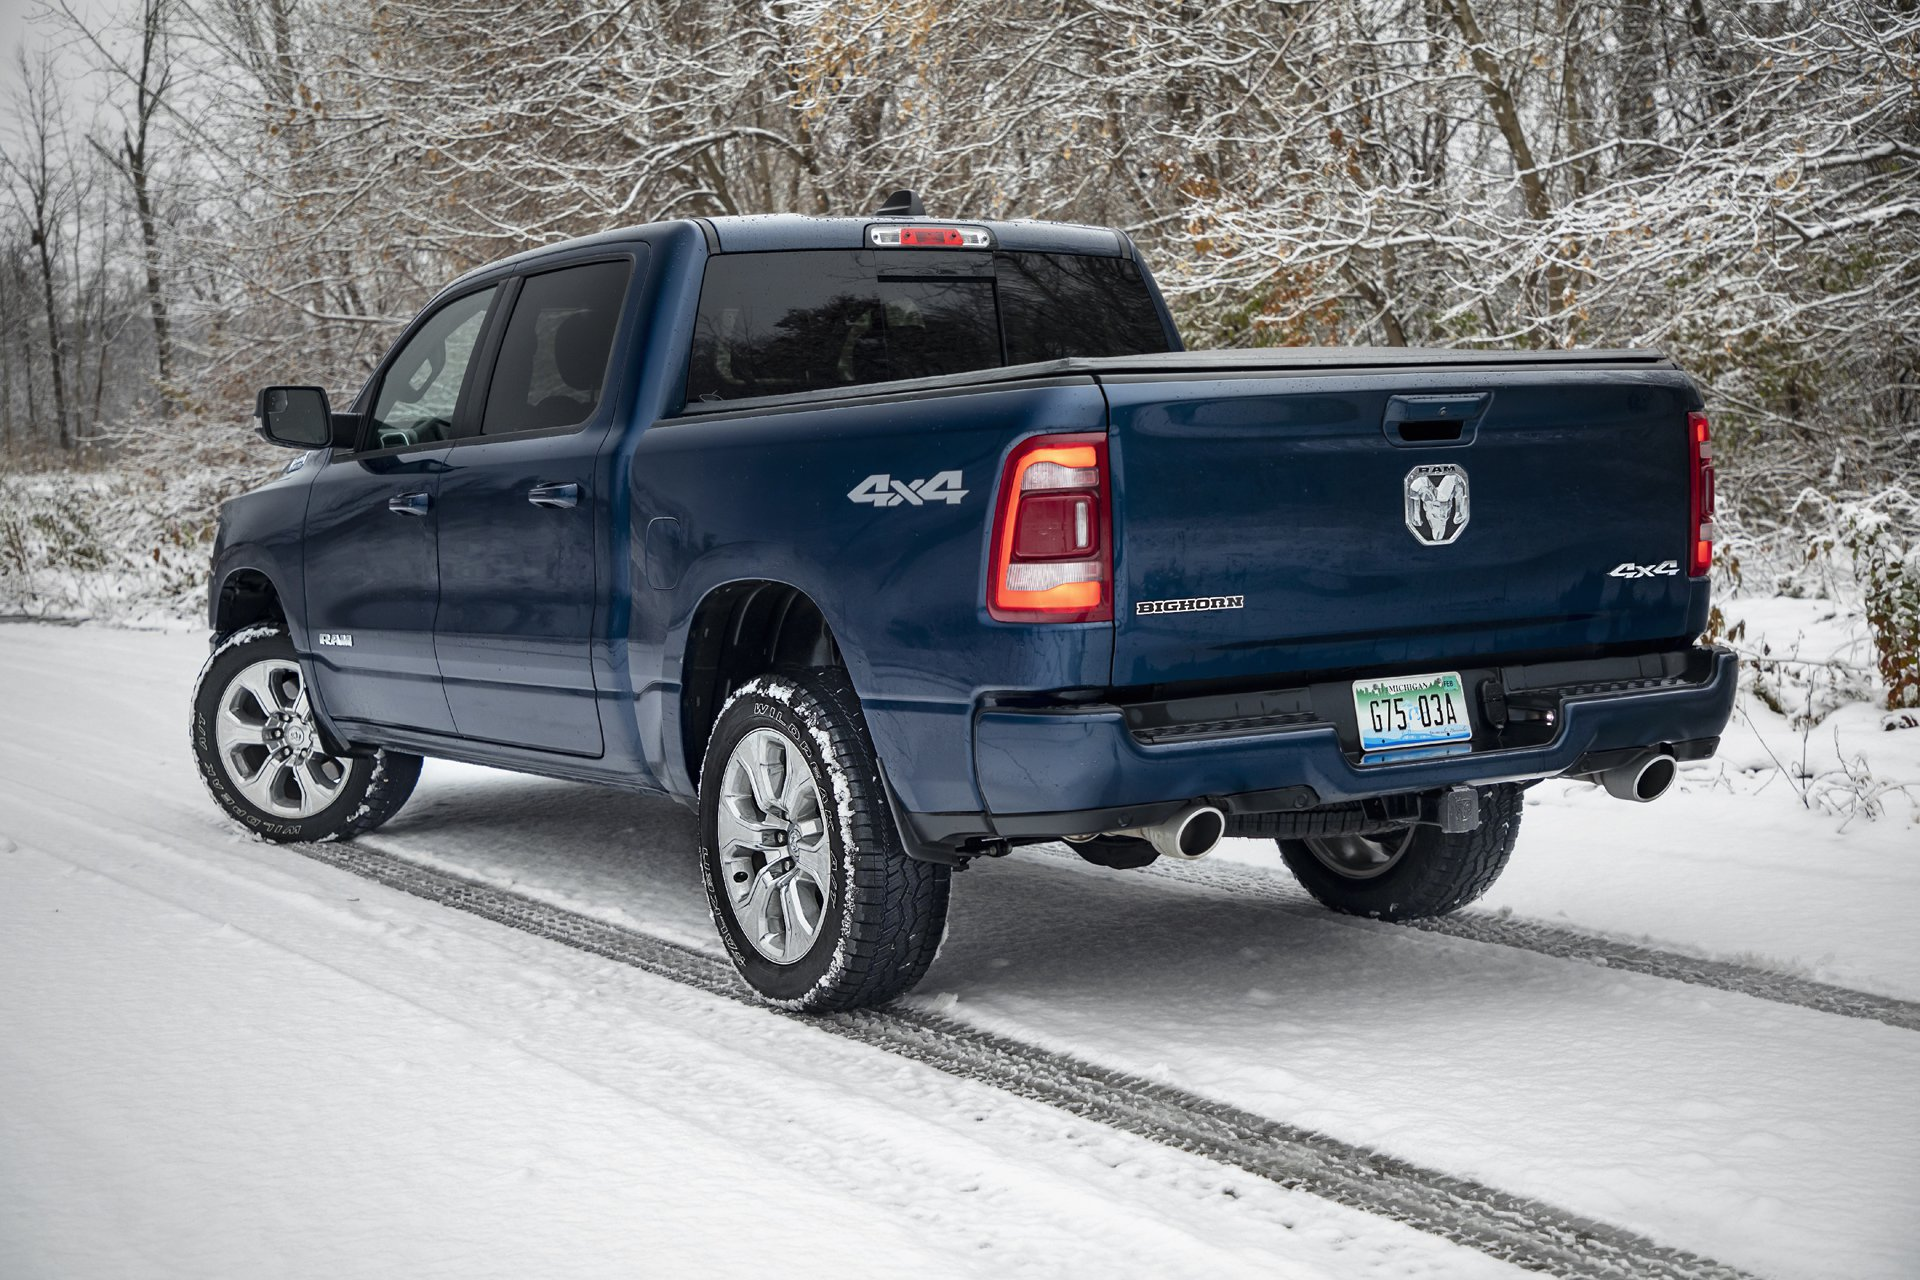 Ram 2500 Concept >> 2019 Ram 1500 North Edition Features Factory Lift Kit - autoevolution